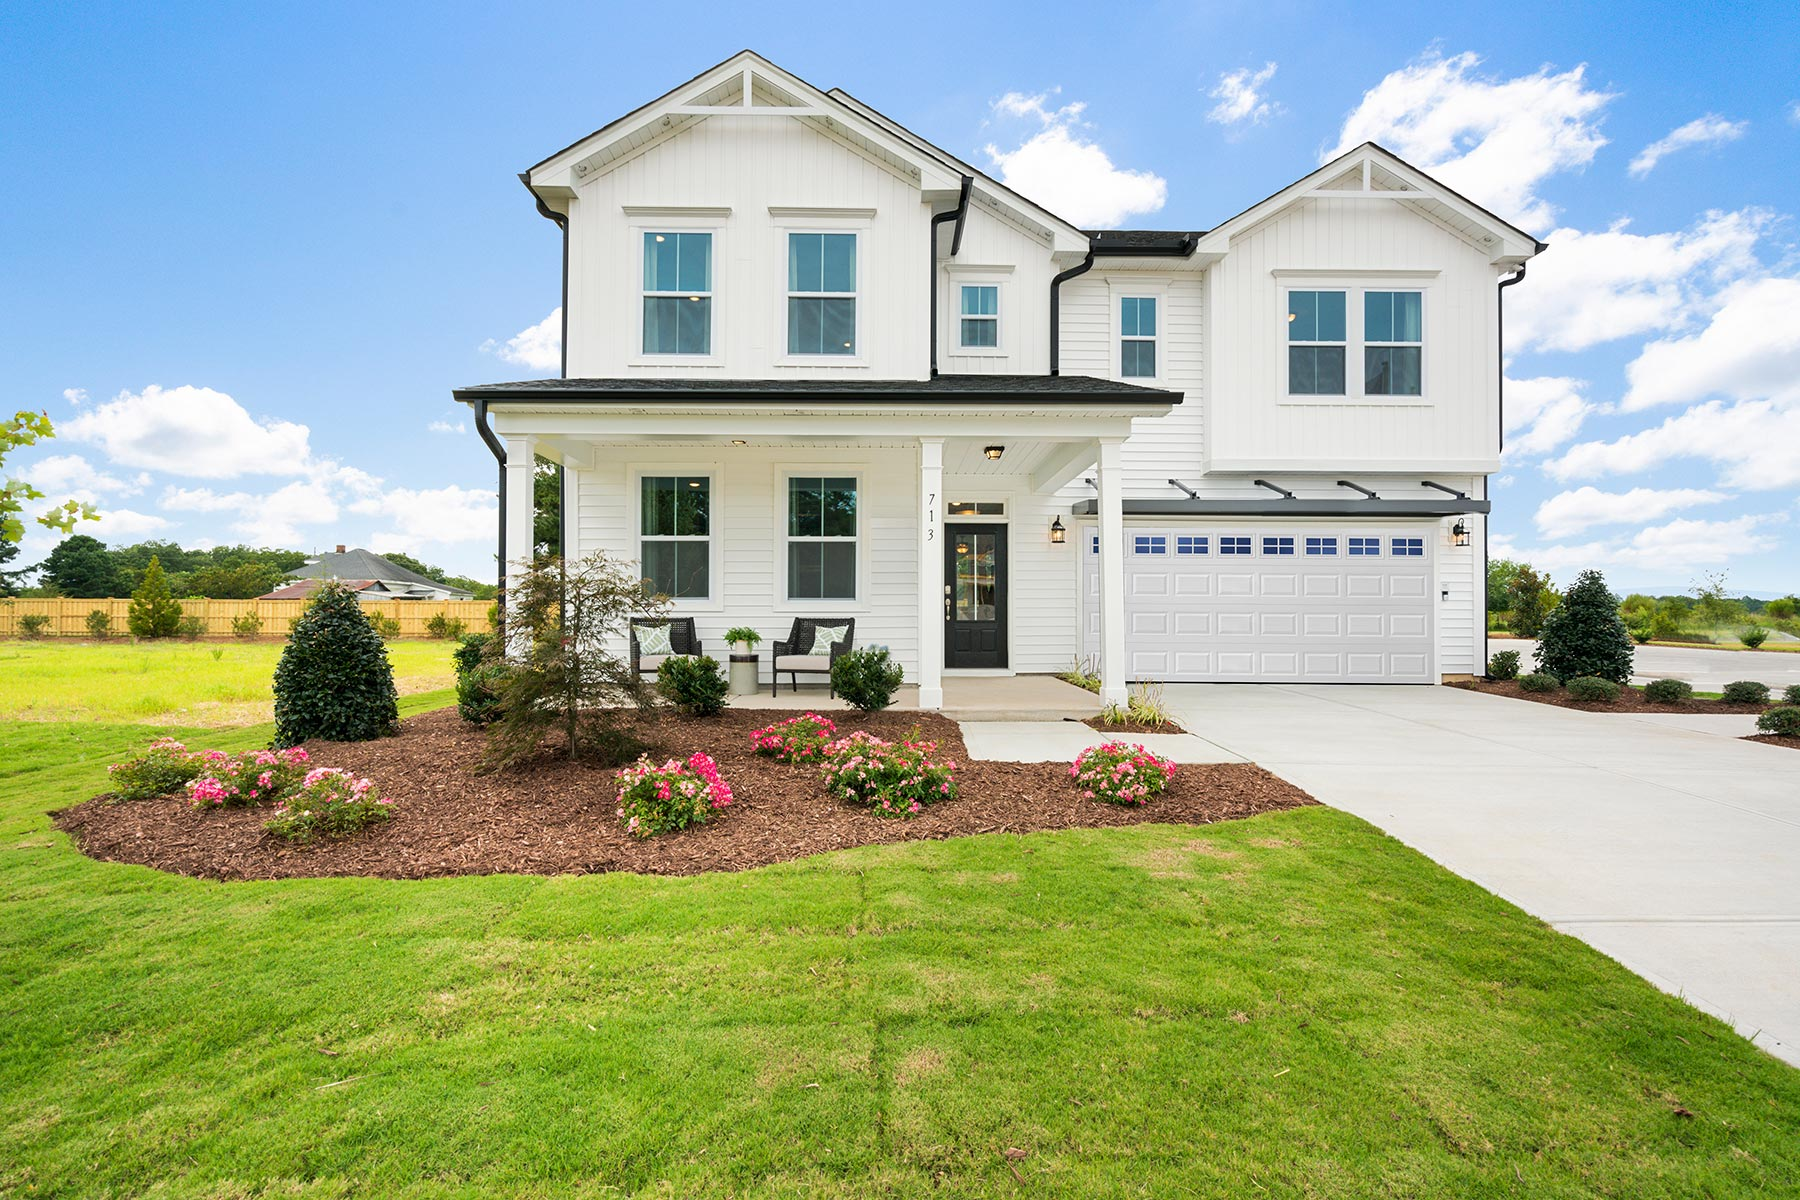 Gaines Plan Elevation Front at Briar Gate in Fuquay-Varina North Carolina by Mattamy Homes